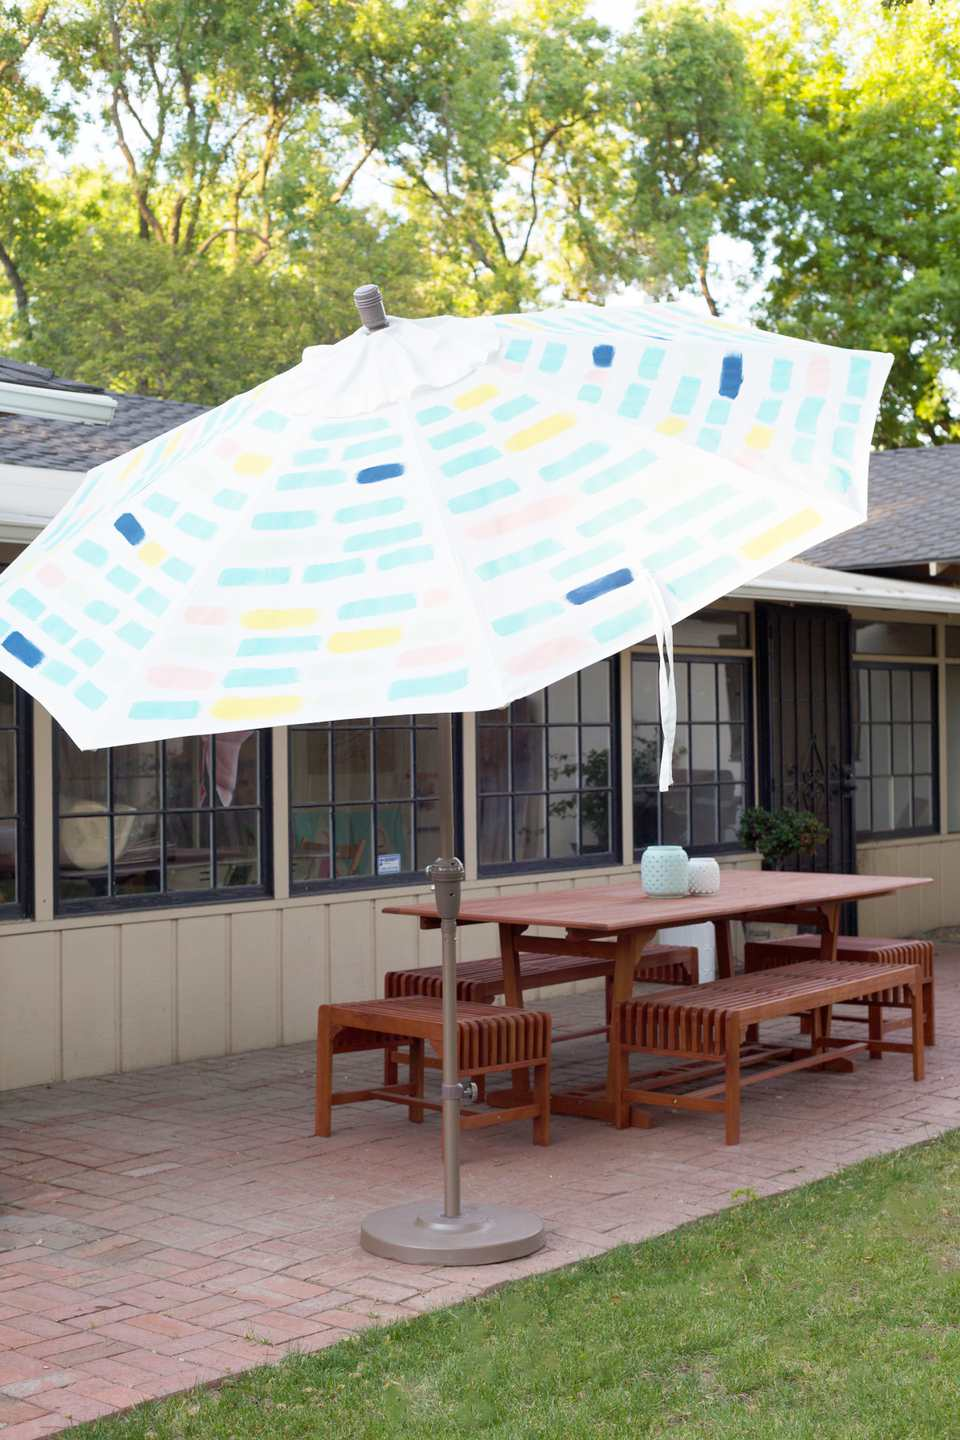 24 awesome backyard diy projects diy painted patio umbrella solutioingenieria Image collections